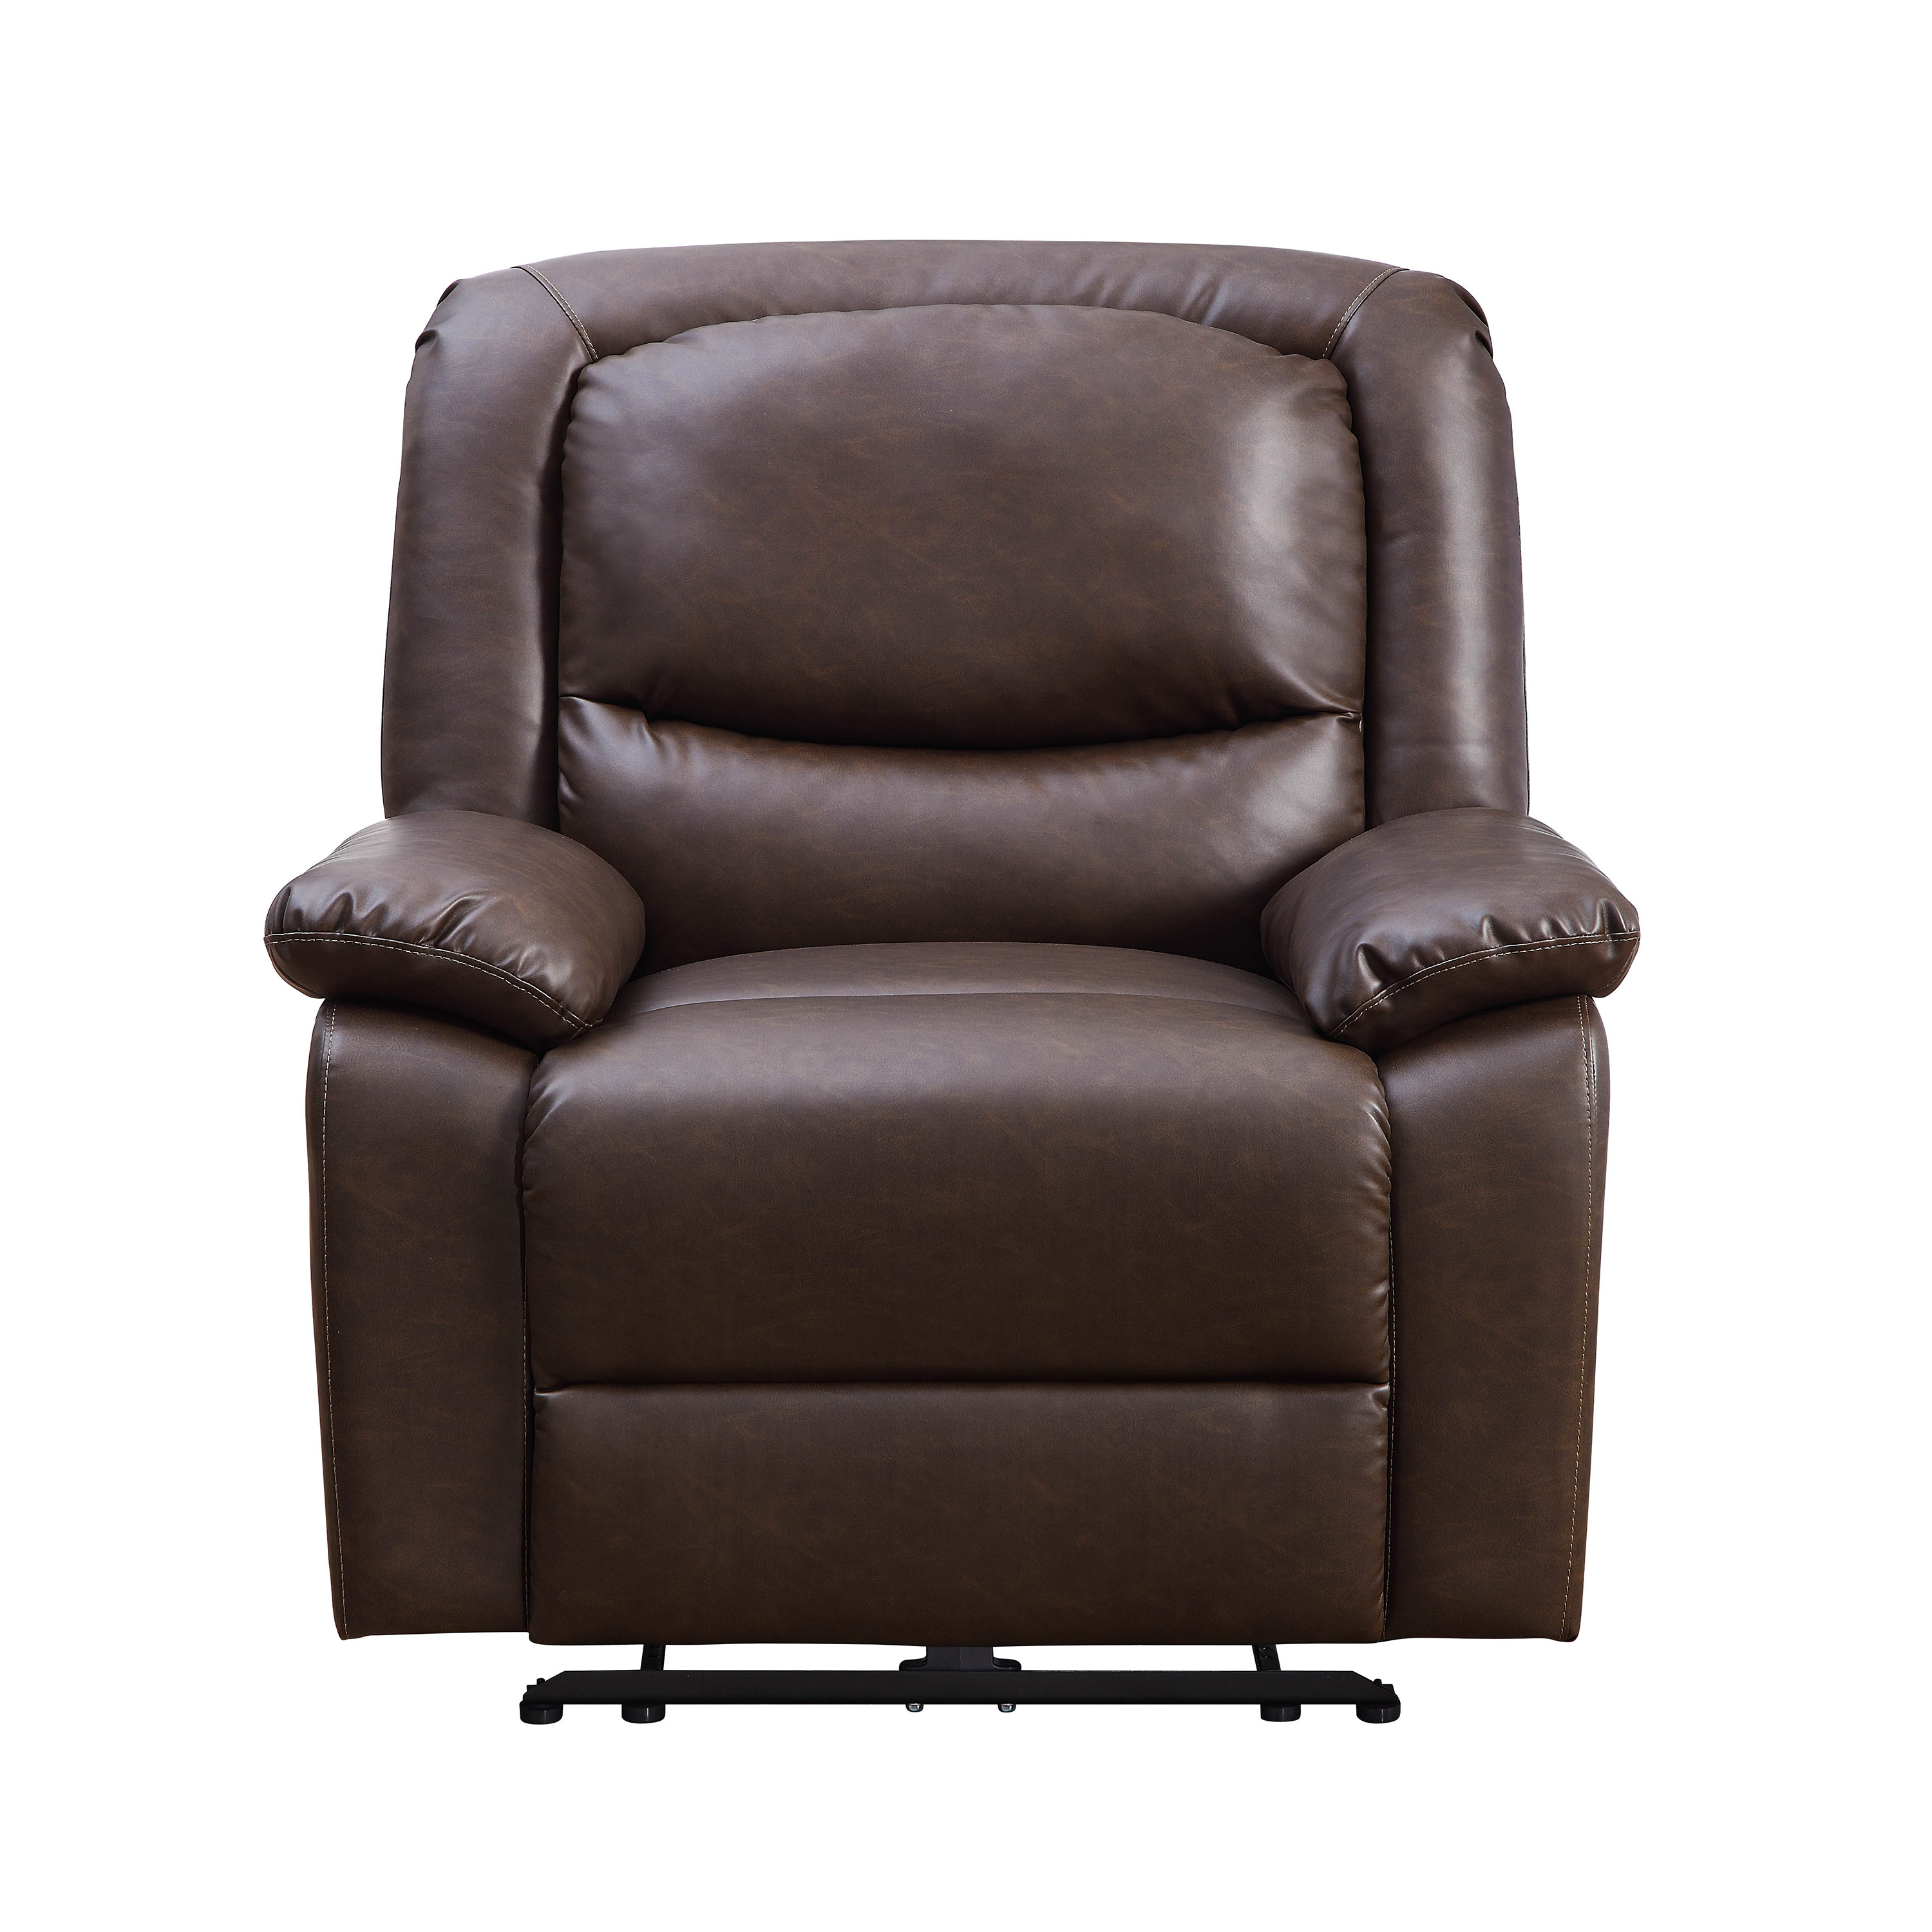 Tremendous Serta Push Button Power Recliner With Deep Body Cushions Dailytribune Chair Design For Home Dailytribuneorg